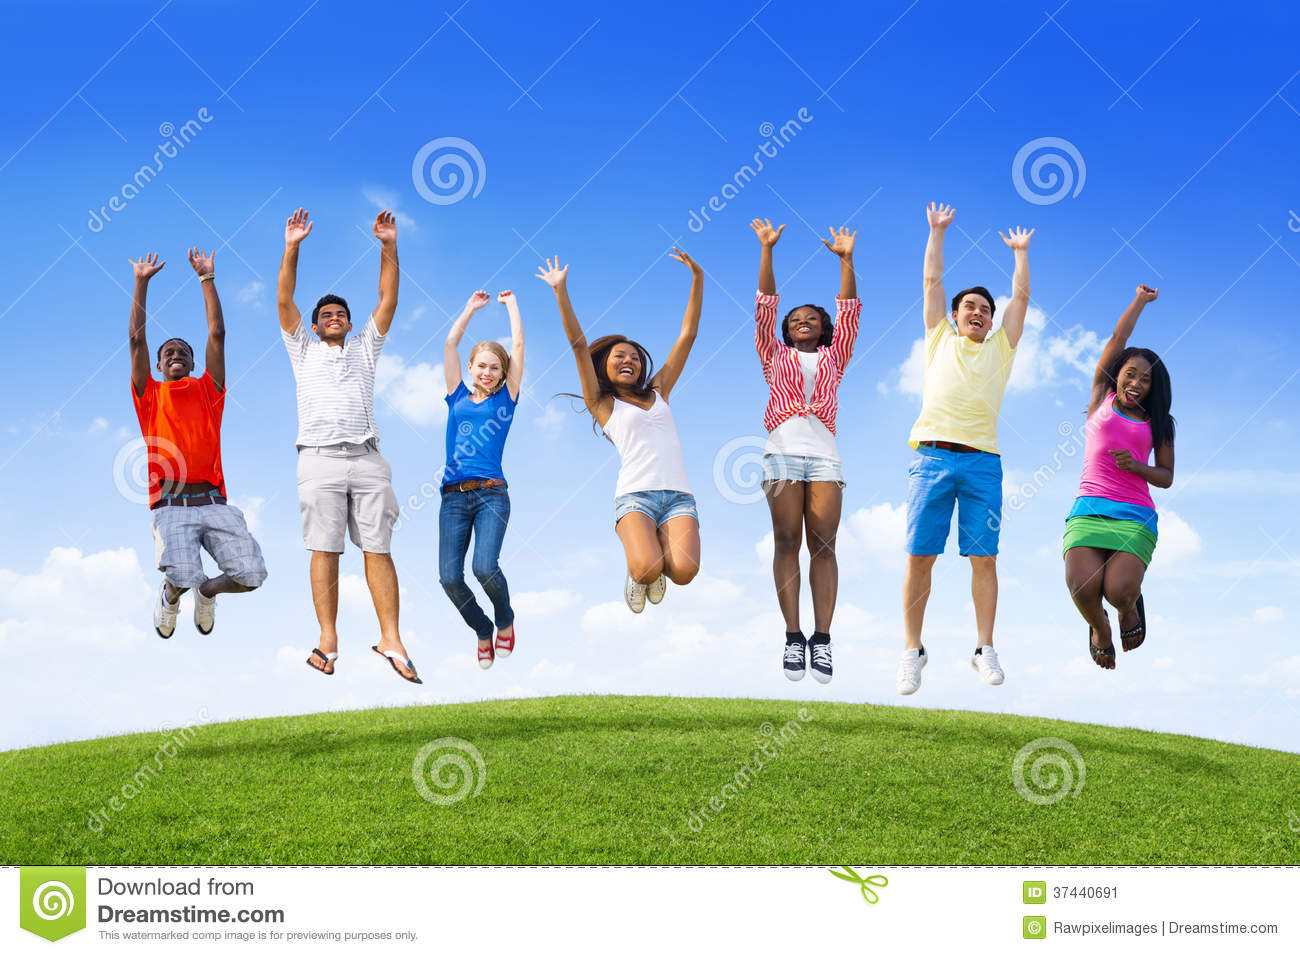 Teens Jumping On a Hill